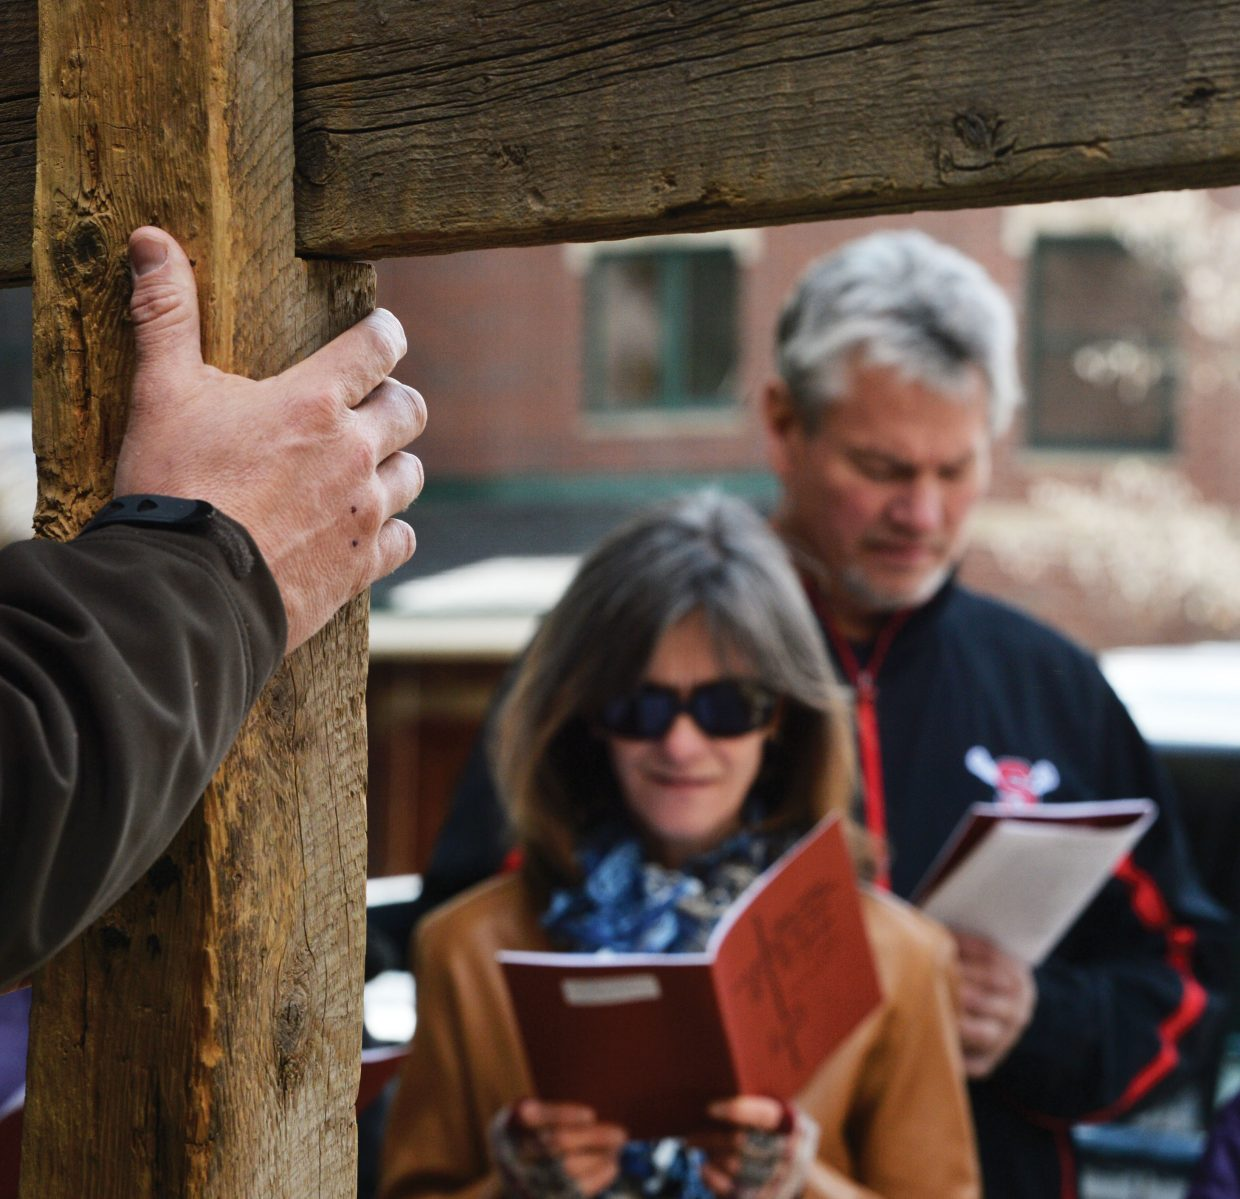 Mary Ann and Billy Gunn read a passage of scripture while taking part in this year's Stations of the Cross in downtown Steamboat Springs. The Stations of the Cross, or the way of the Cross, which is a symbolic pilgrimage highlighting the suffering of Christ as he made his way to Calvary. The group stopped at 14 different locations in downtown Steamboat Springs, stopping at each for a few moments of prayer. The annual remembrance is just one of many events leading up to Easter Sunday.